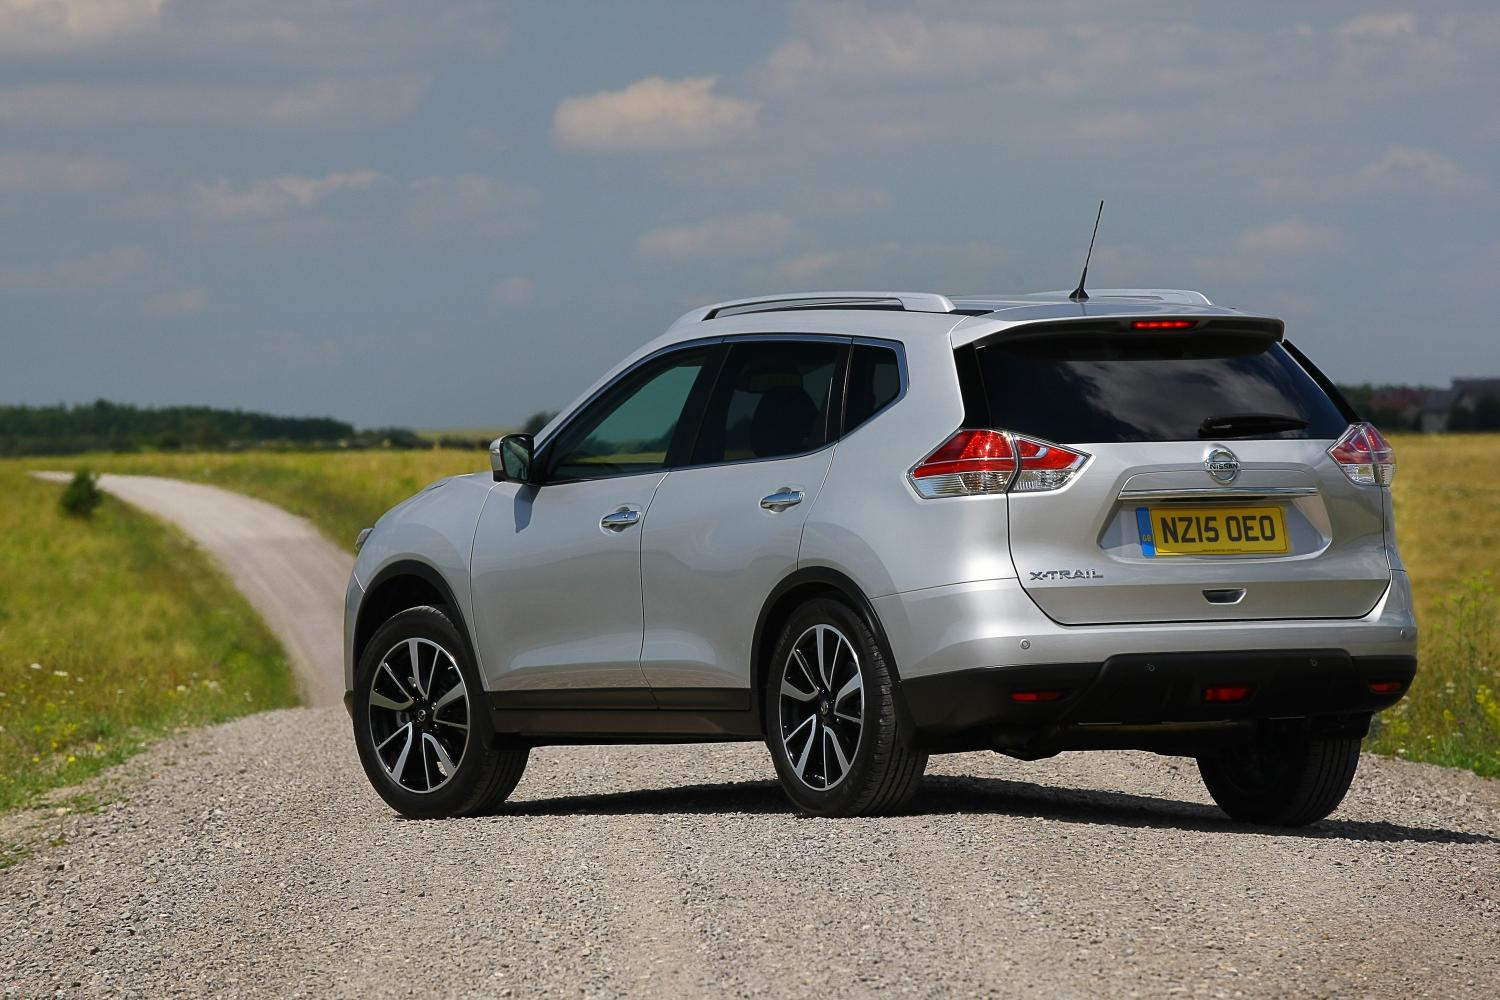 nissan x trail gets 1 6 liter dig t turbo engine with 163 hp price cut in britain autoevolution. Black Bedroom Furniture Sets. Home Design Ideas